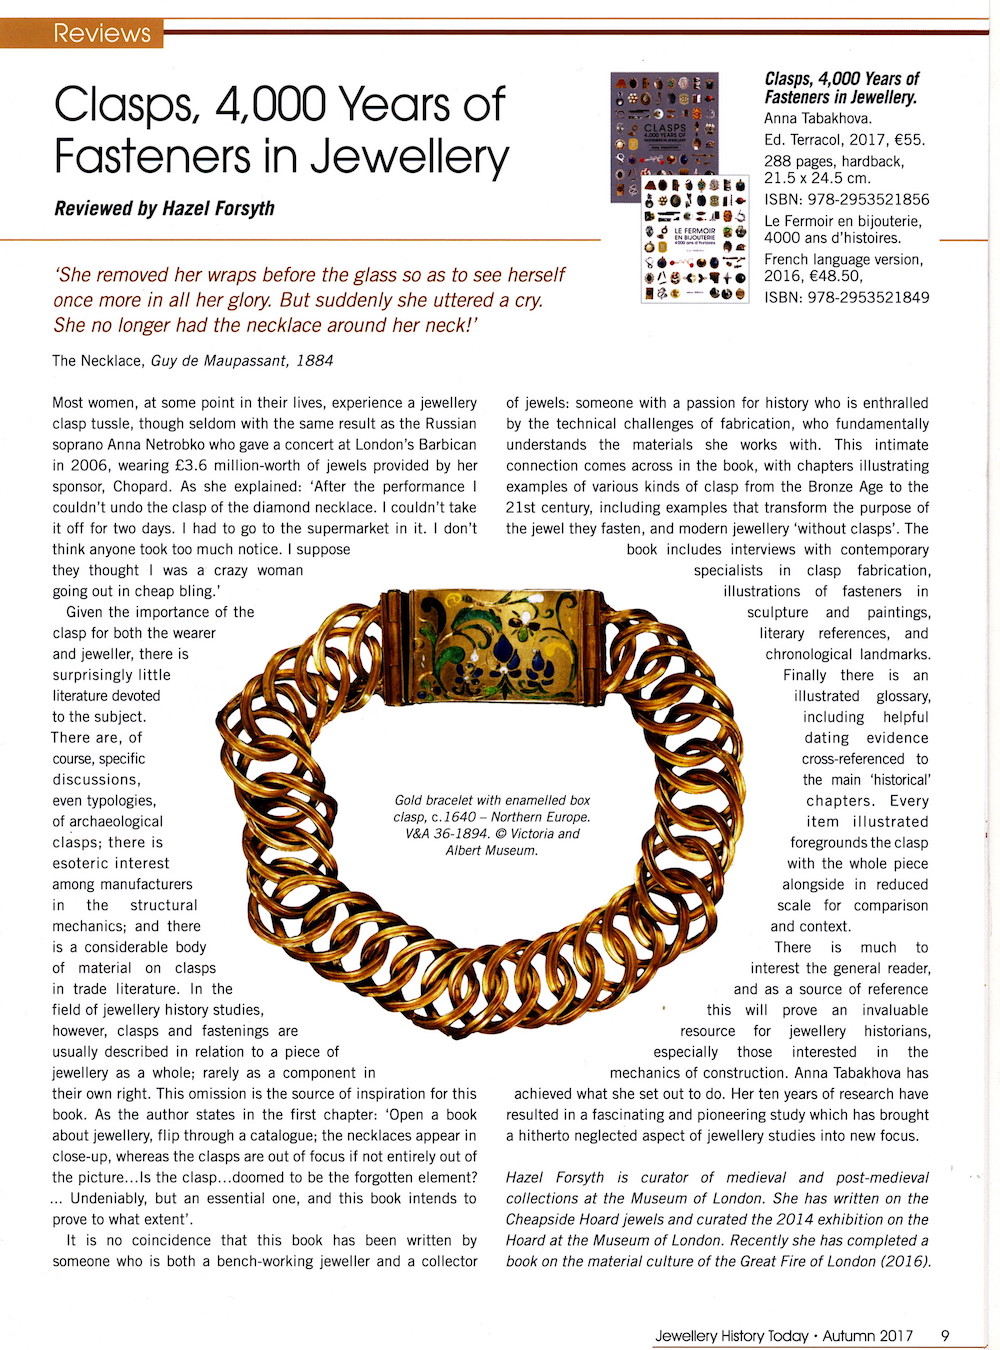 http://www.editions-terracol.com/img/cms/Jewellery History Today Clasp book Anna Tabakhova review